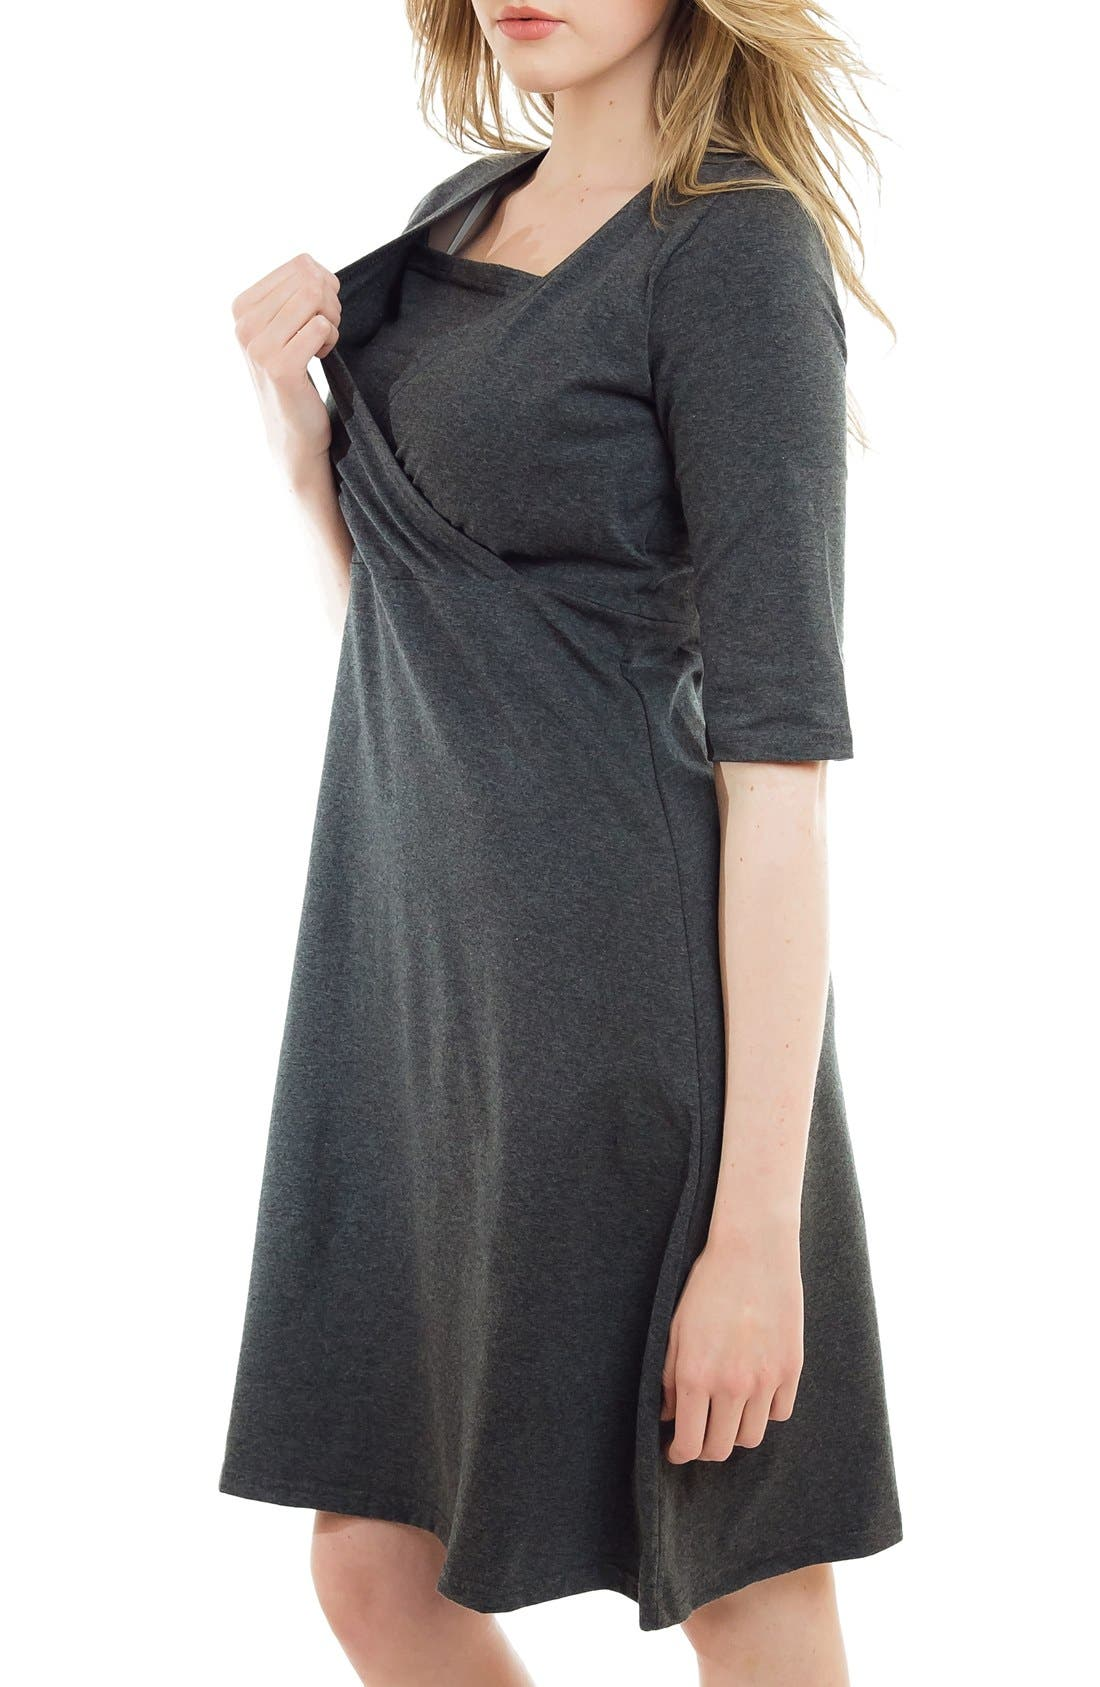 Crossover Maternity/Nursing Dress,                             Alternate thumbnail 5, color,                             HEATHER CHARCOAL